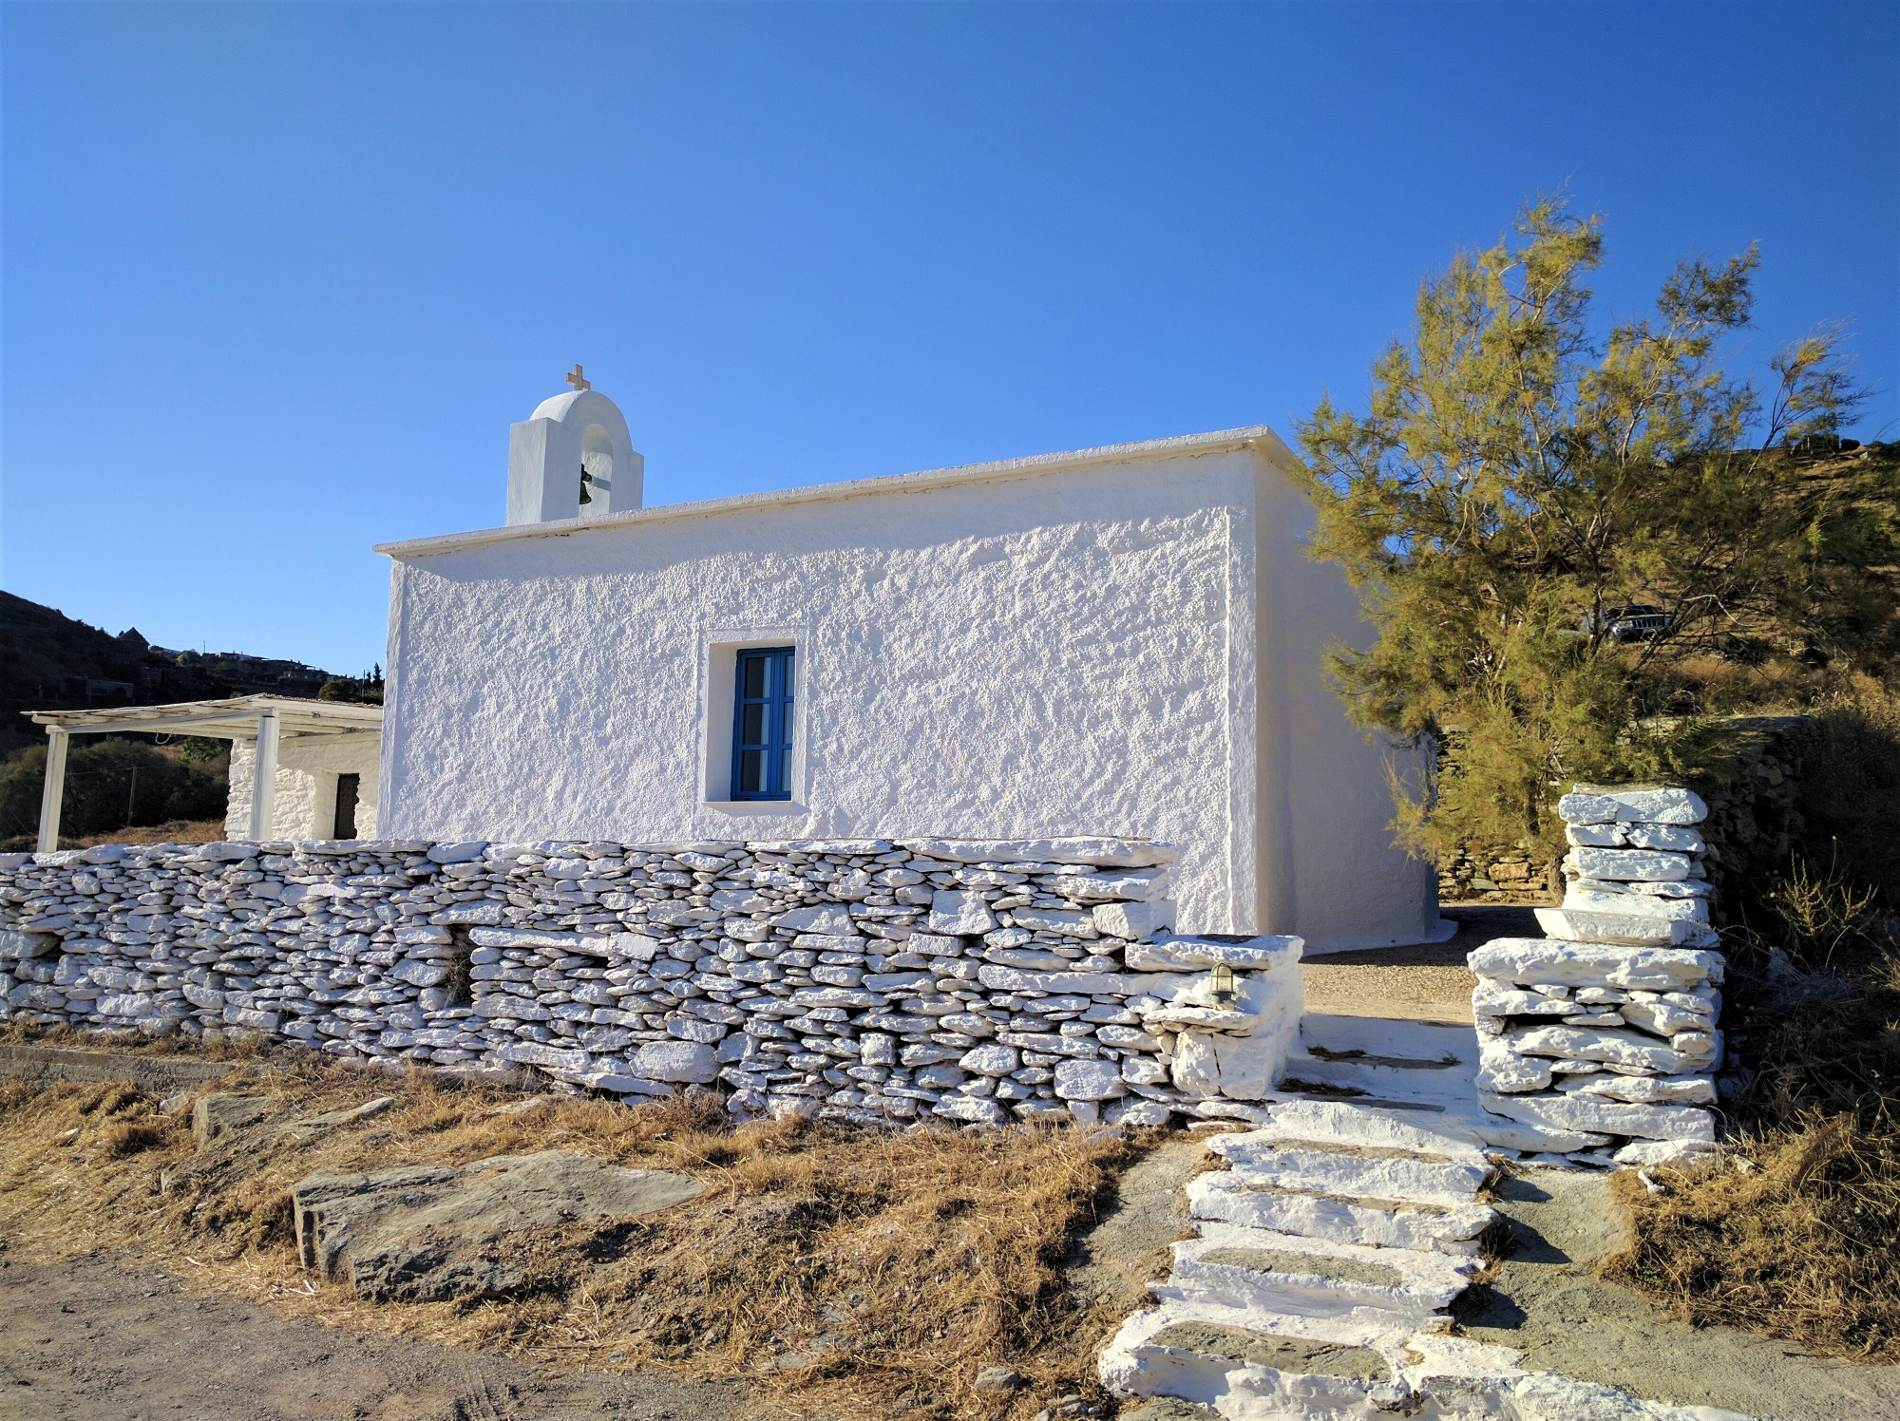 A traditional white-washed Greek church in Kea island, just one hour away from Athens. Source: Truevoyagers